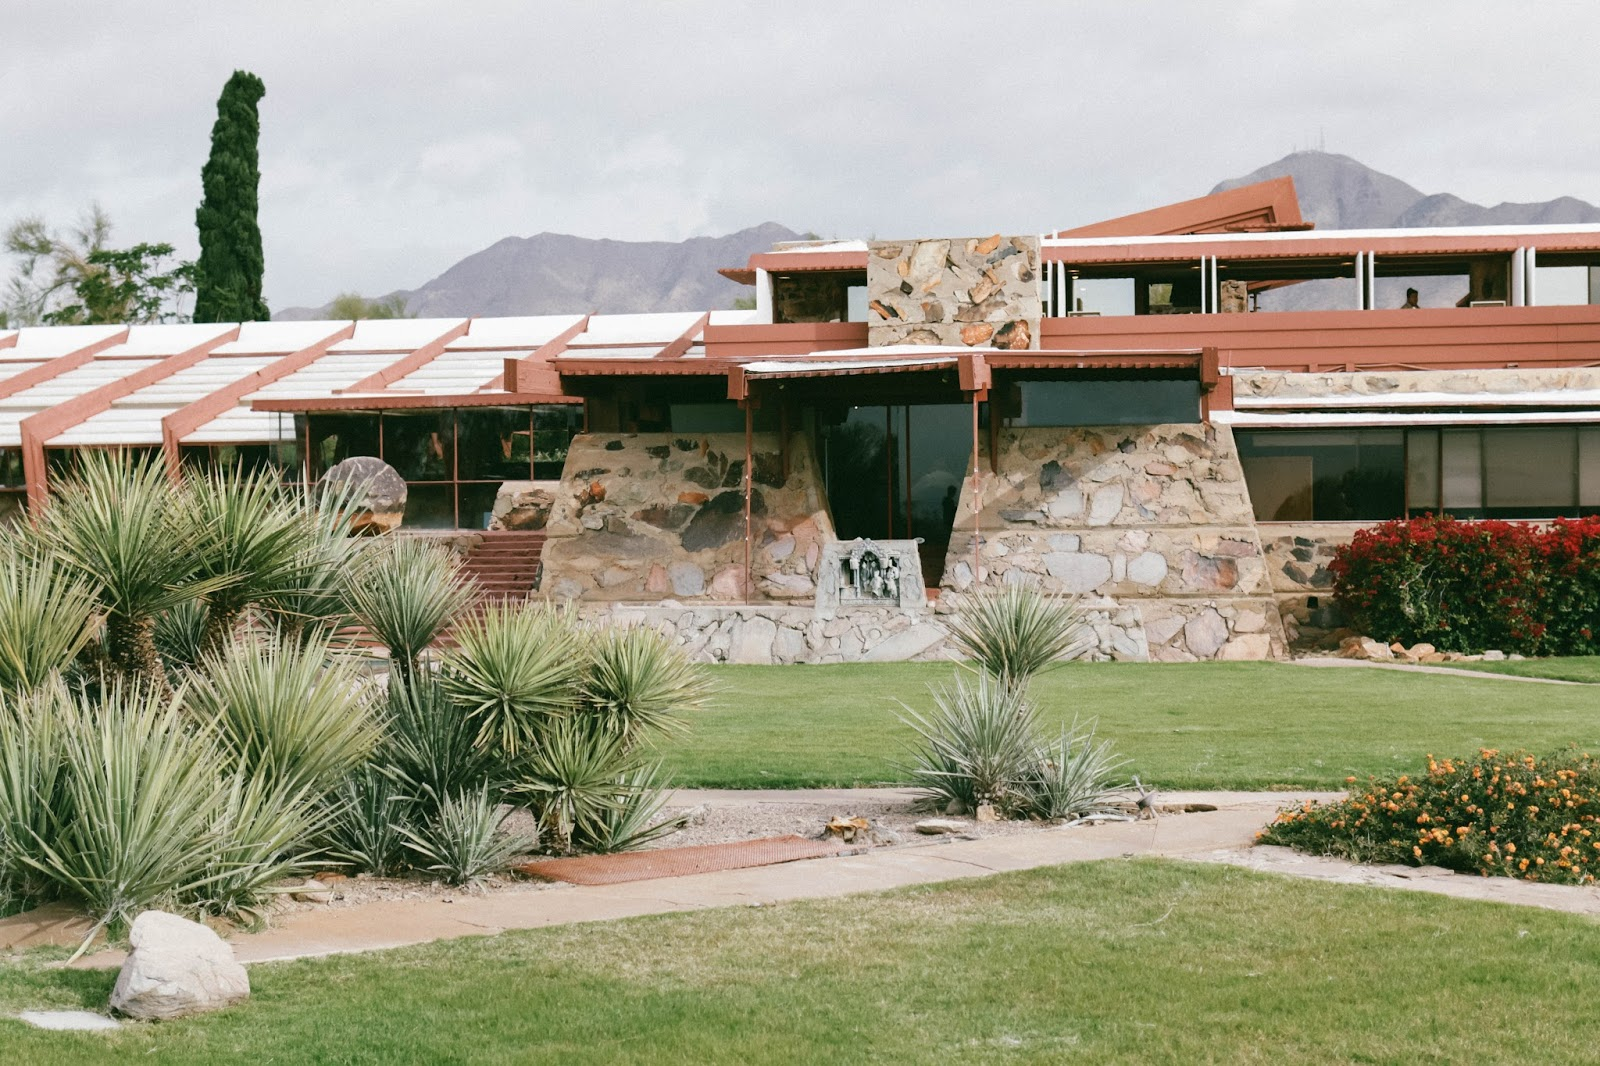 what to do in phoenix, arizona, visit, trip, vacation, hotel valley ho, review, cafe zuzu, frank lloyd wright, taleisin west, scottsdale, craft 64, travel, travel blog, travel blogger, hotel review, tips